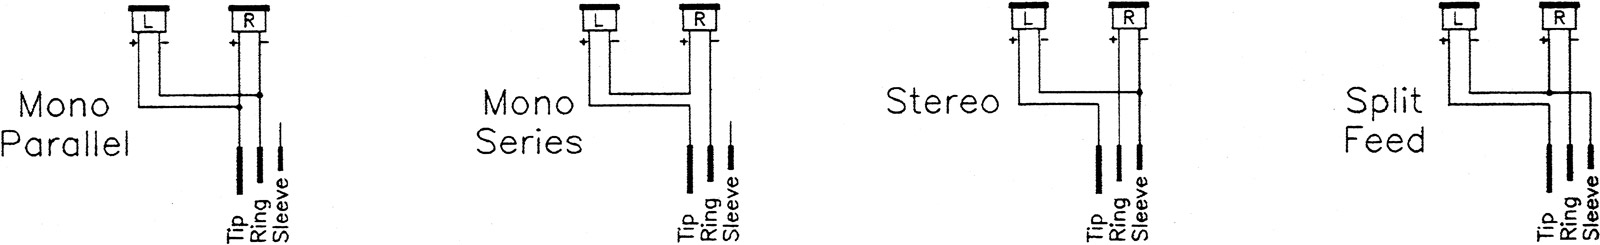 Headphone wiring conventions